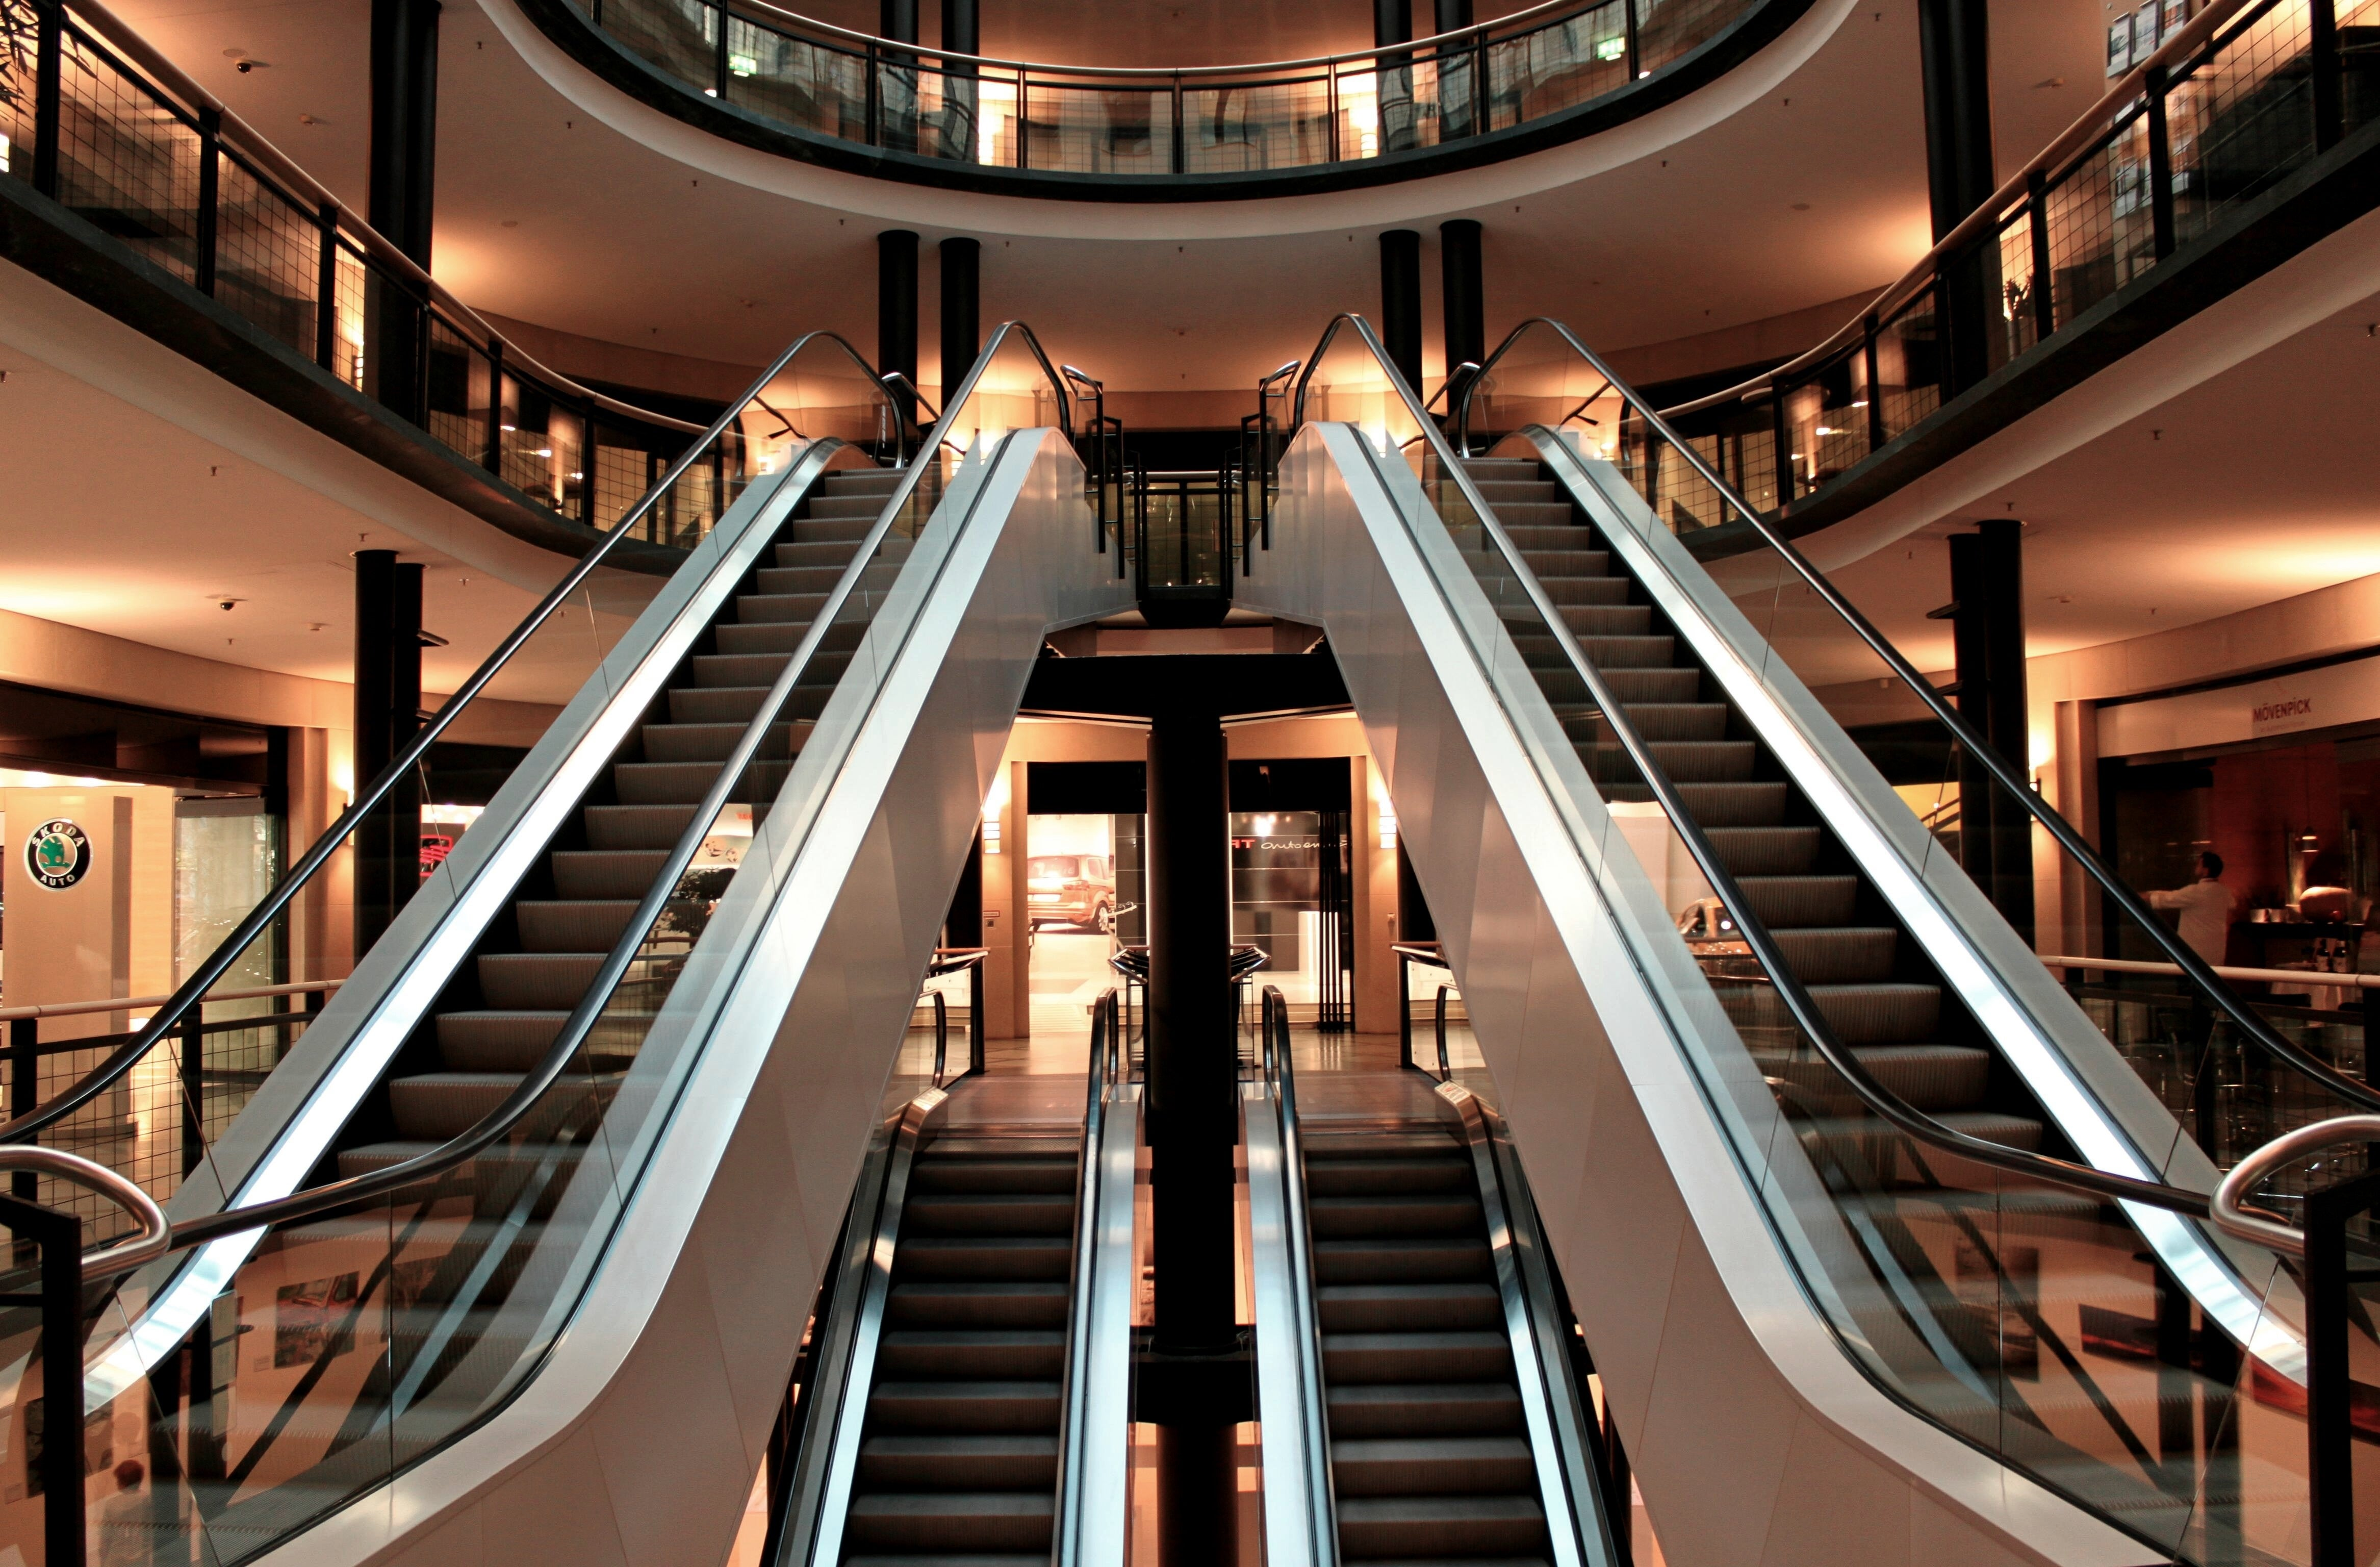 Another round of COVID-19 retail leasing and commercial leasing laws